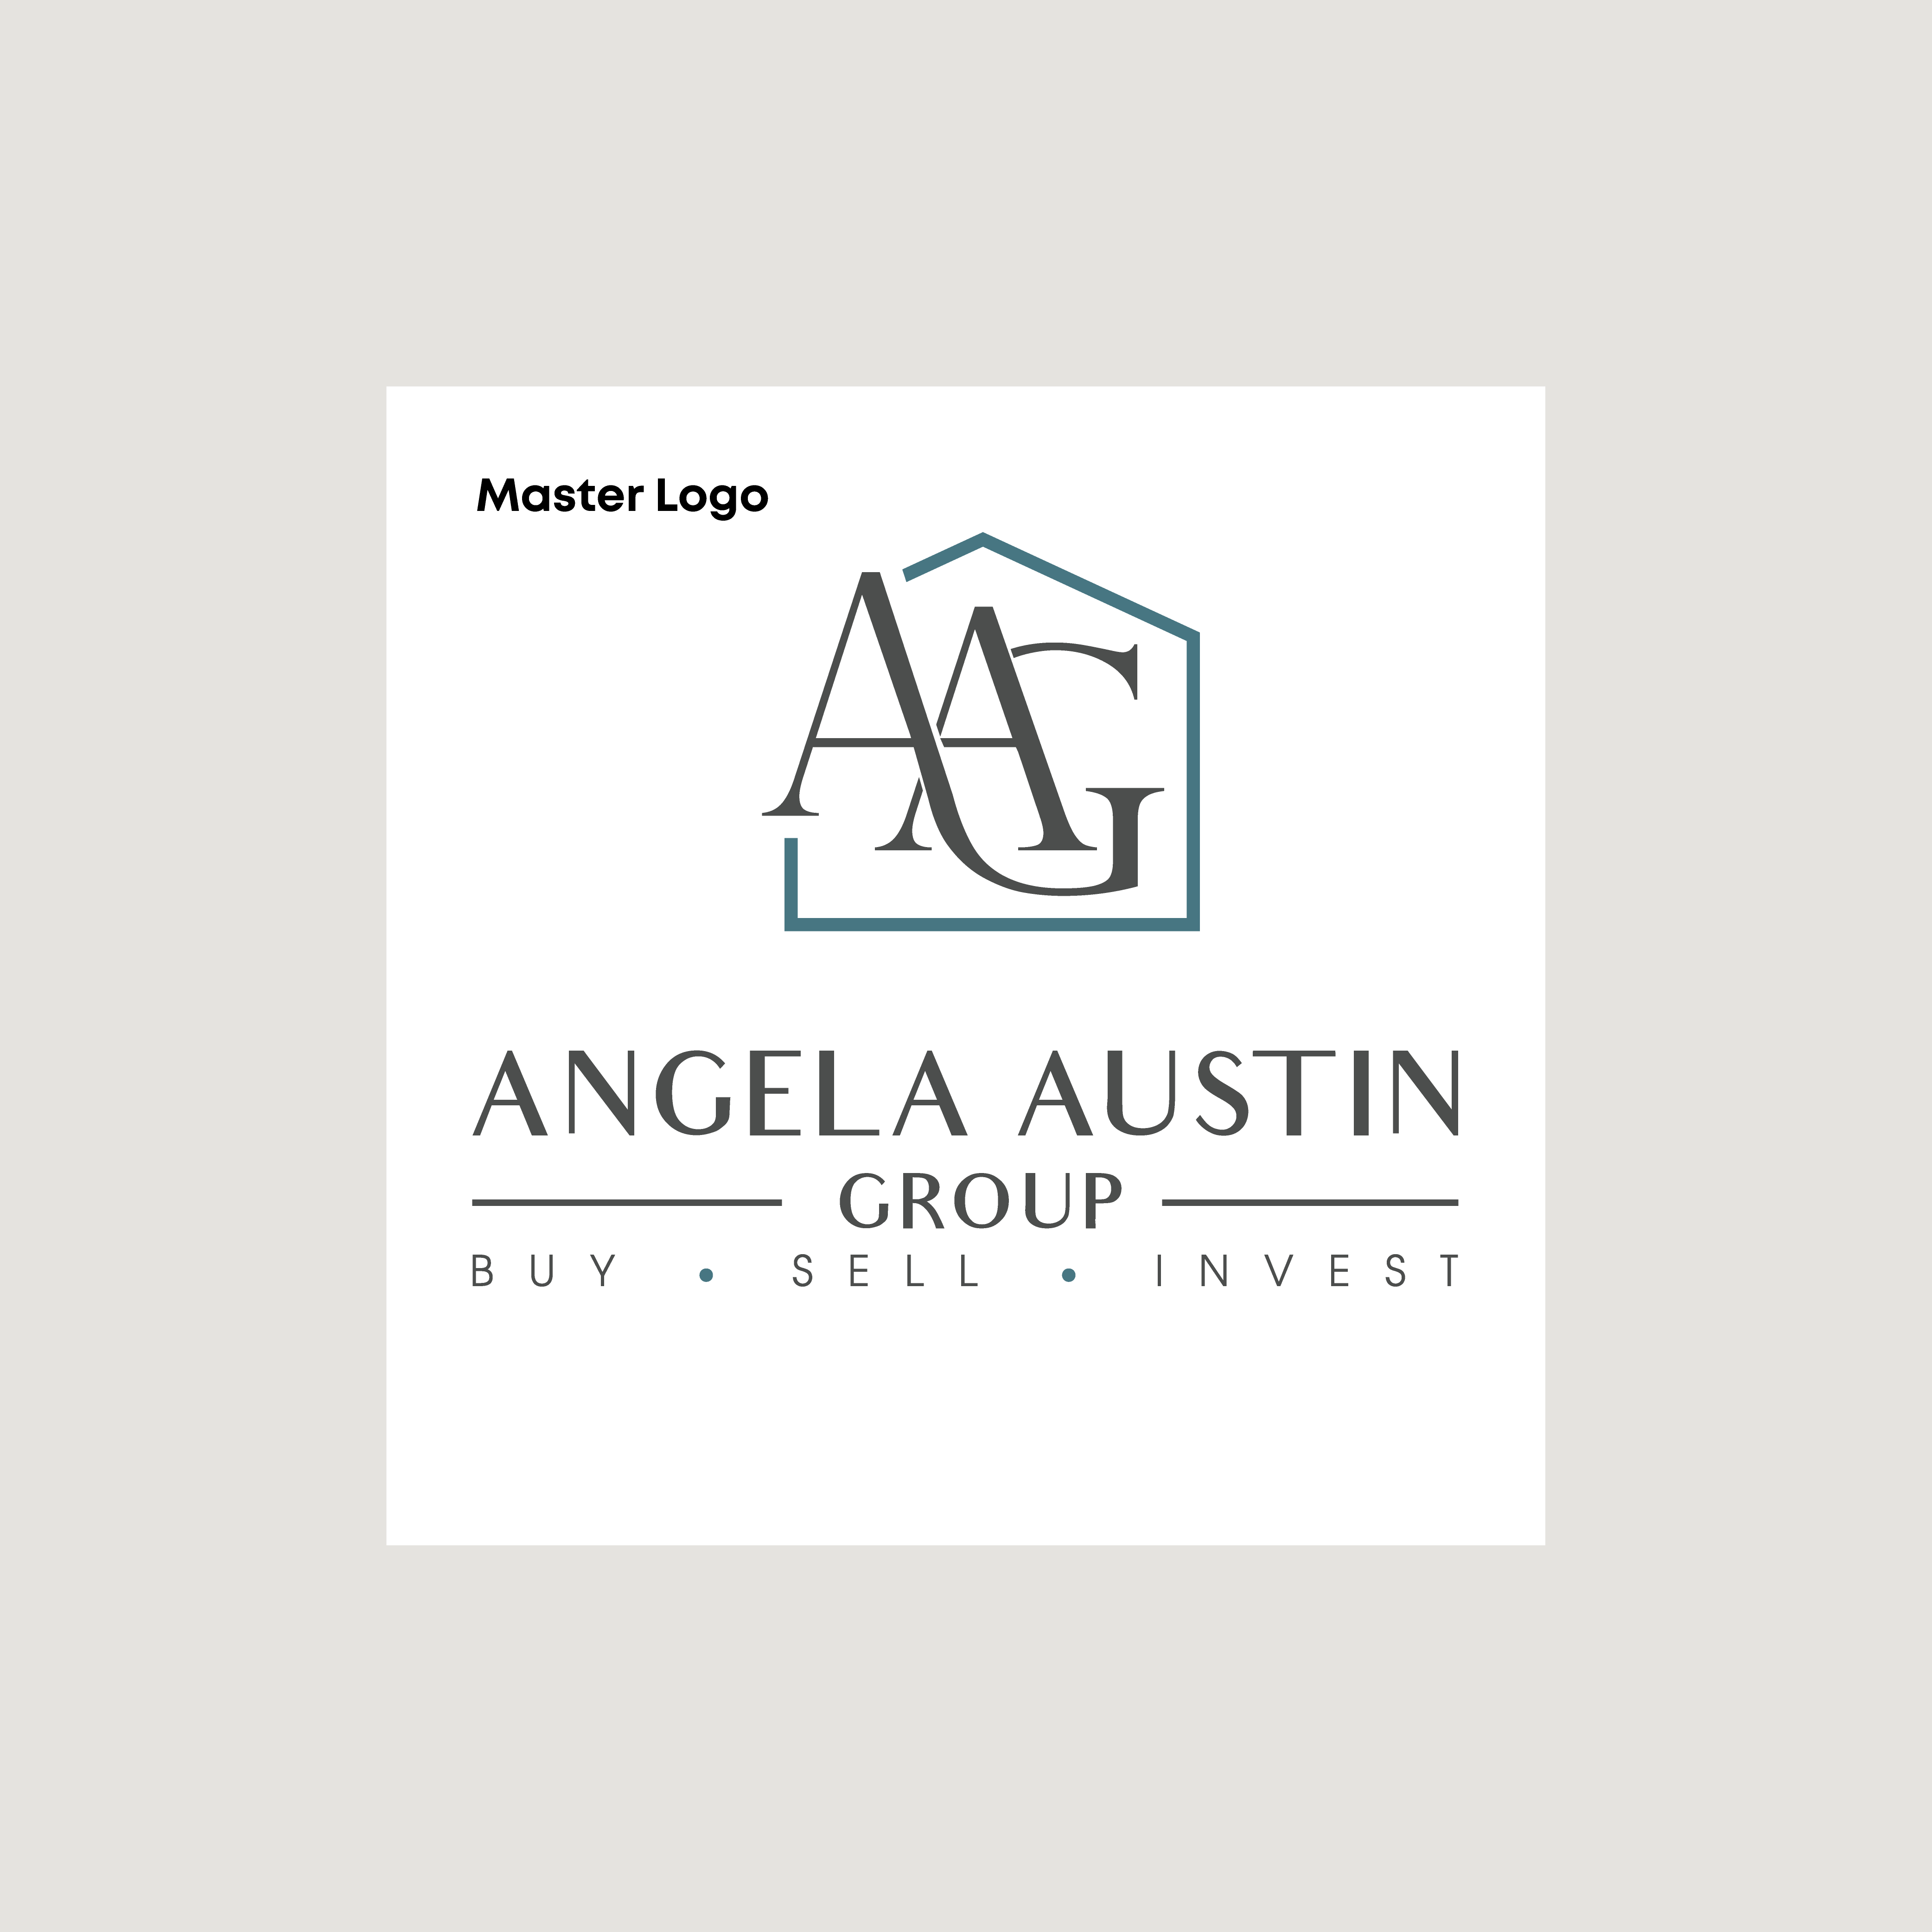 Looking for a Sophisticated, Unique Logo for a Real Estate Group